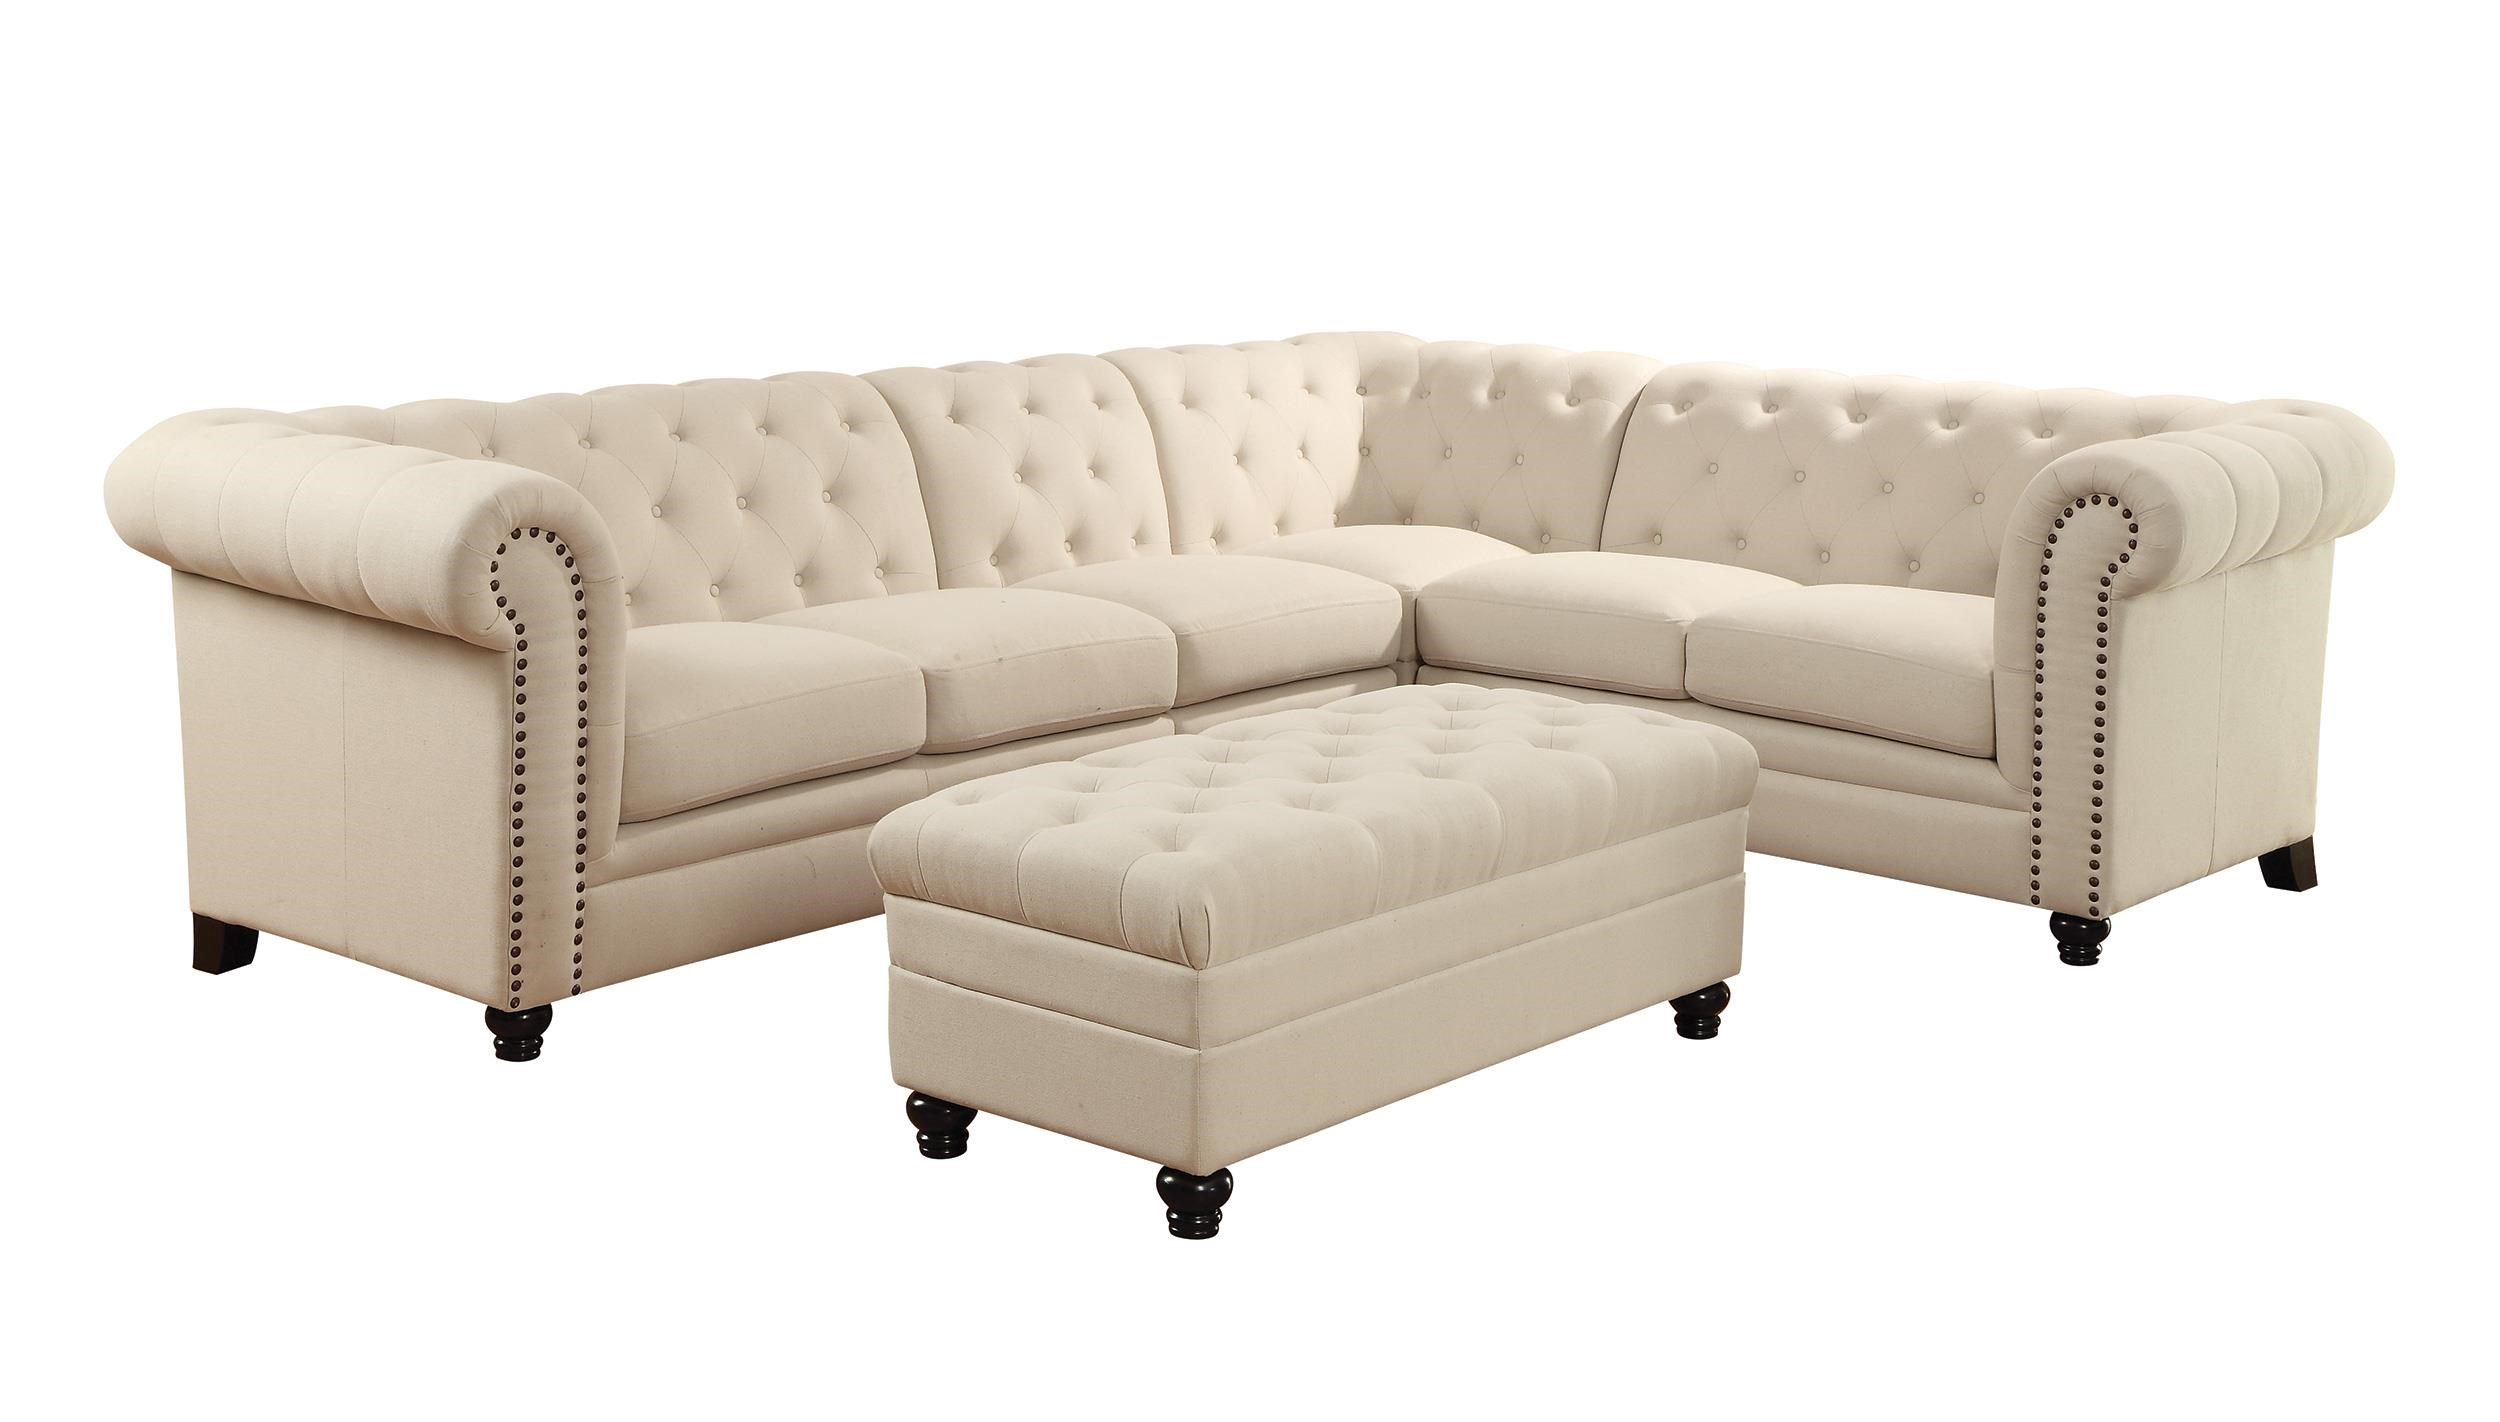 Button Tufted Sectional Sofa with Armless Chair Roy by